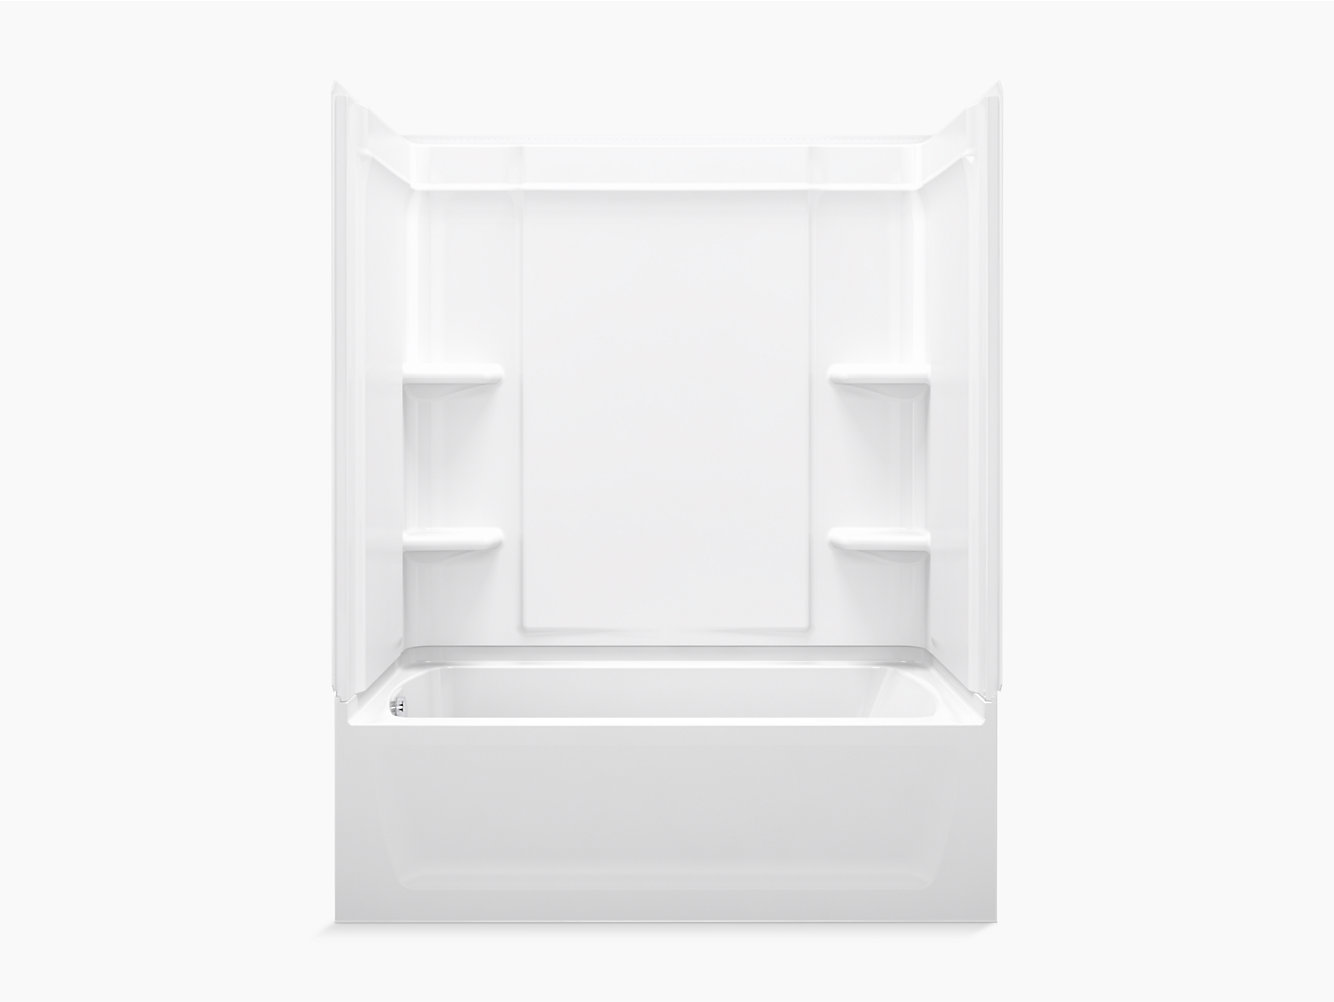 "Ensemble Medley Series 7632, 60"" x 32"" Whirlpool/Shower 